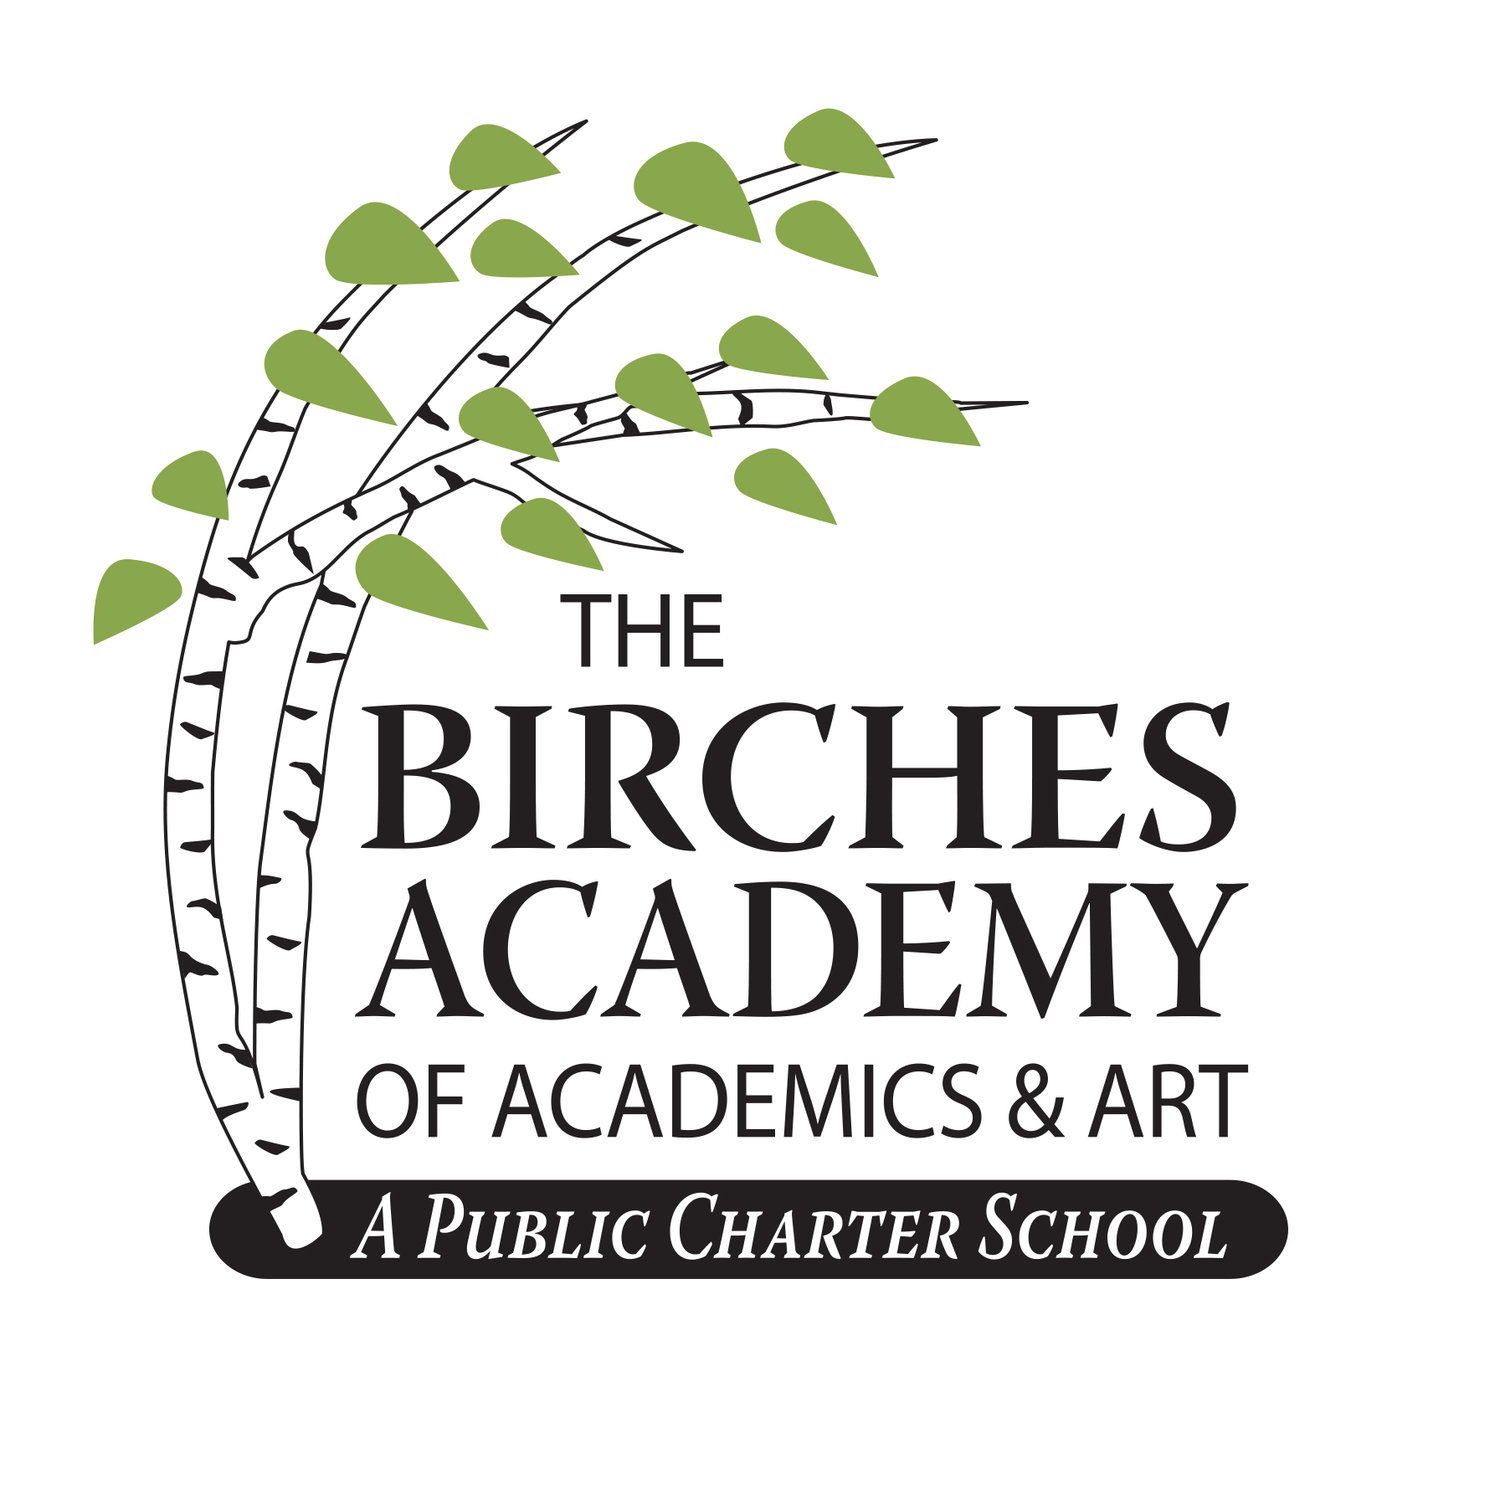 The Birches Academy of Academics and Art